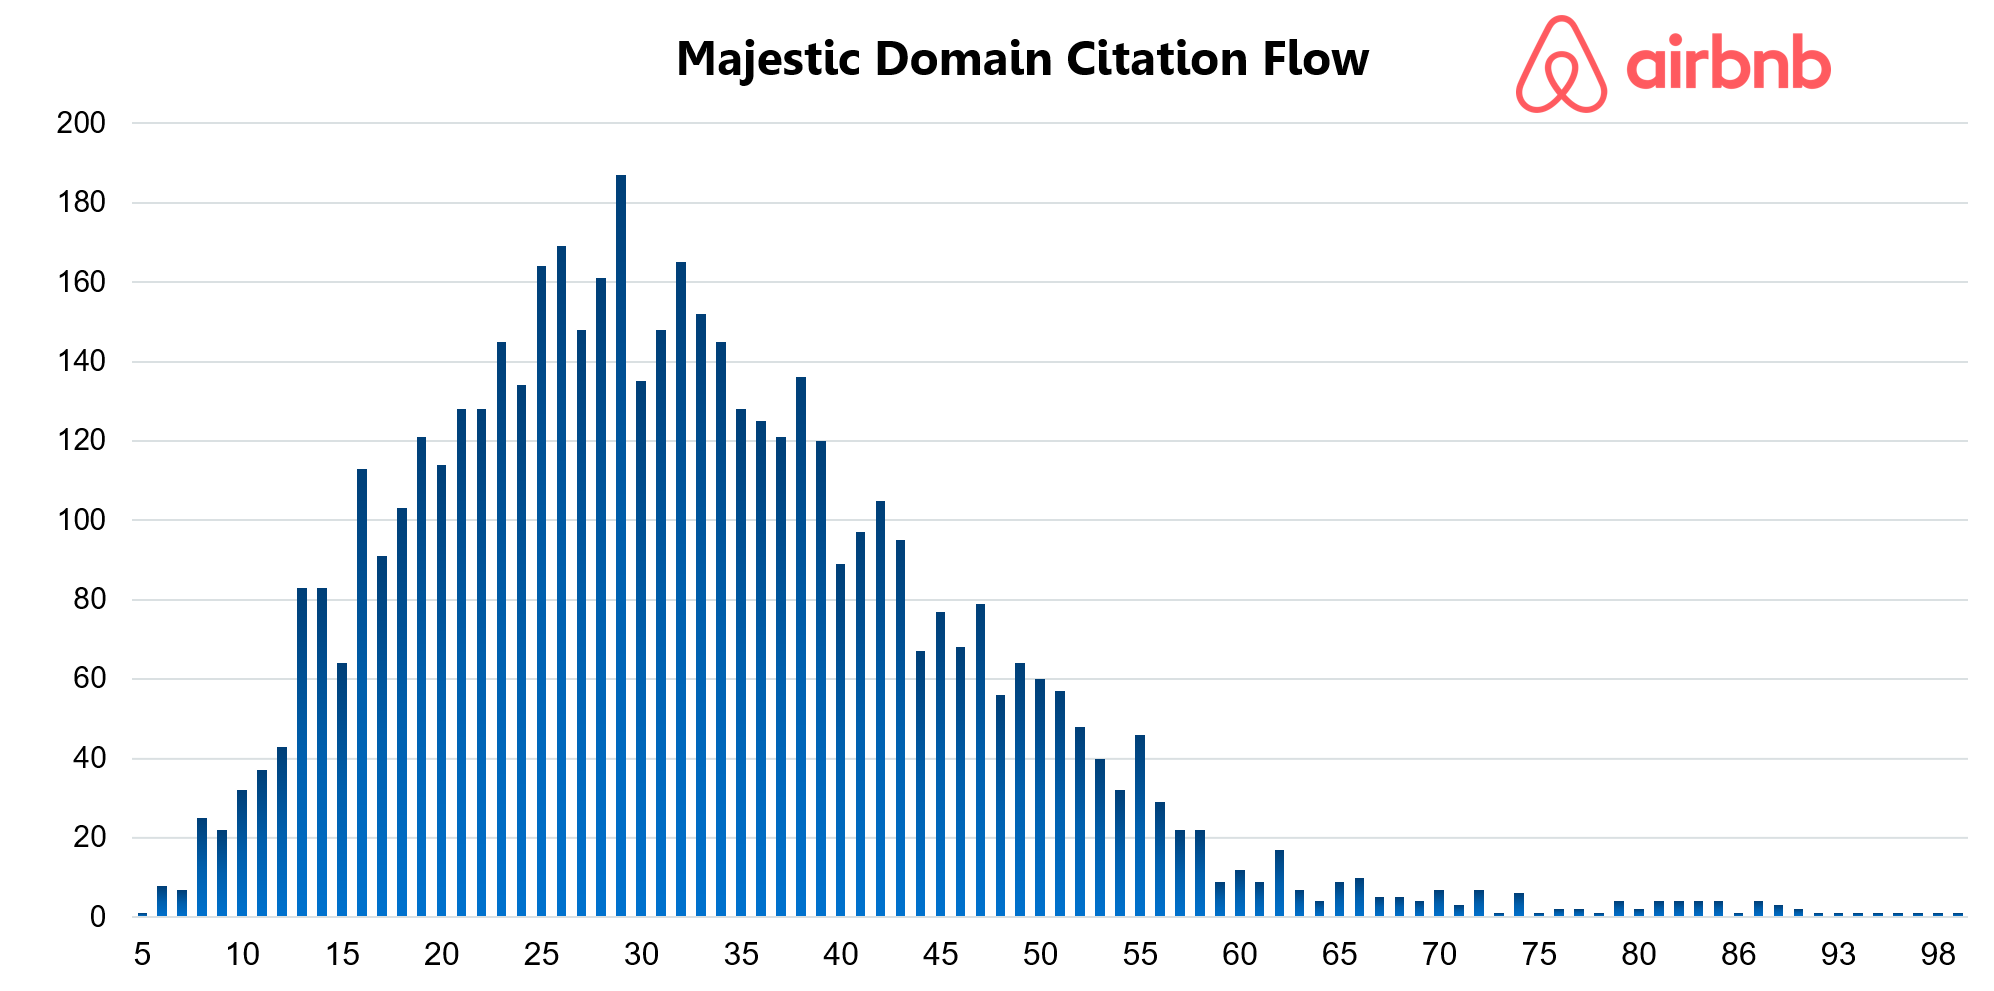 Airbnb Majestic Domain Citation Flow